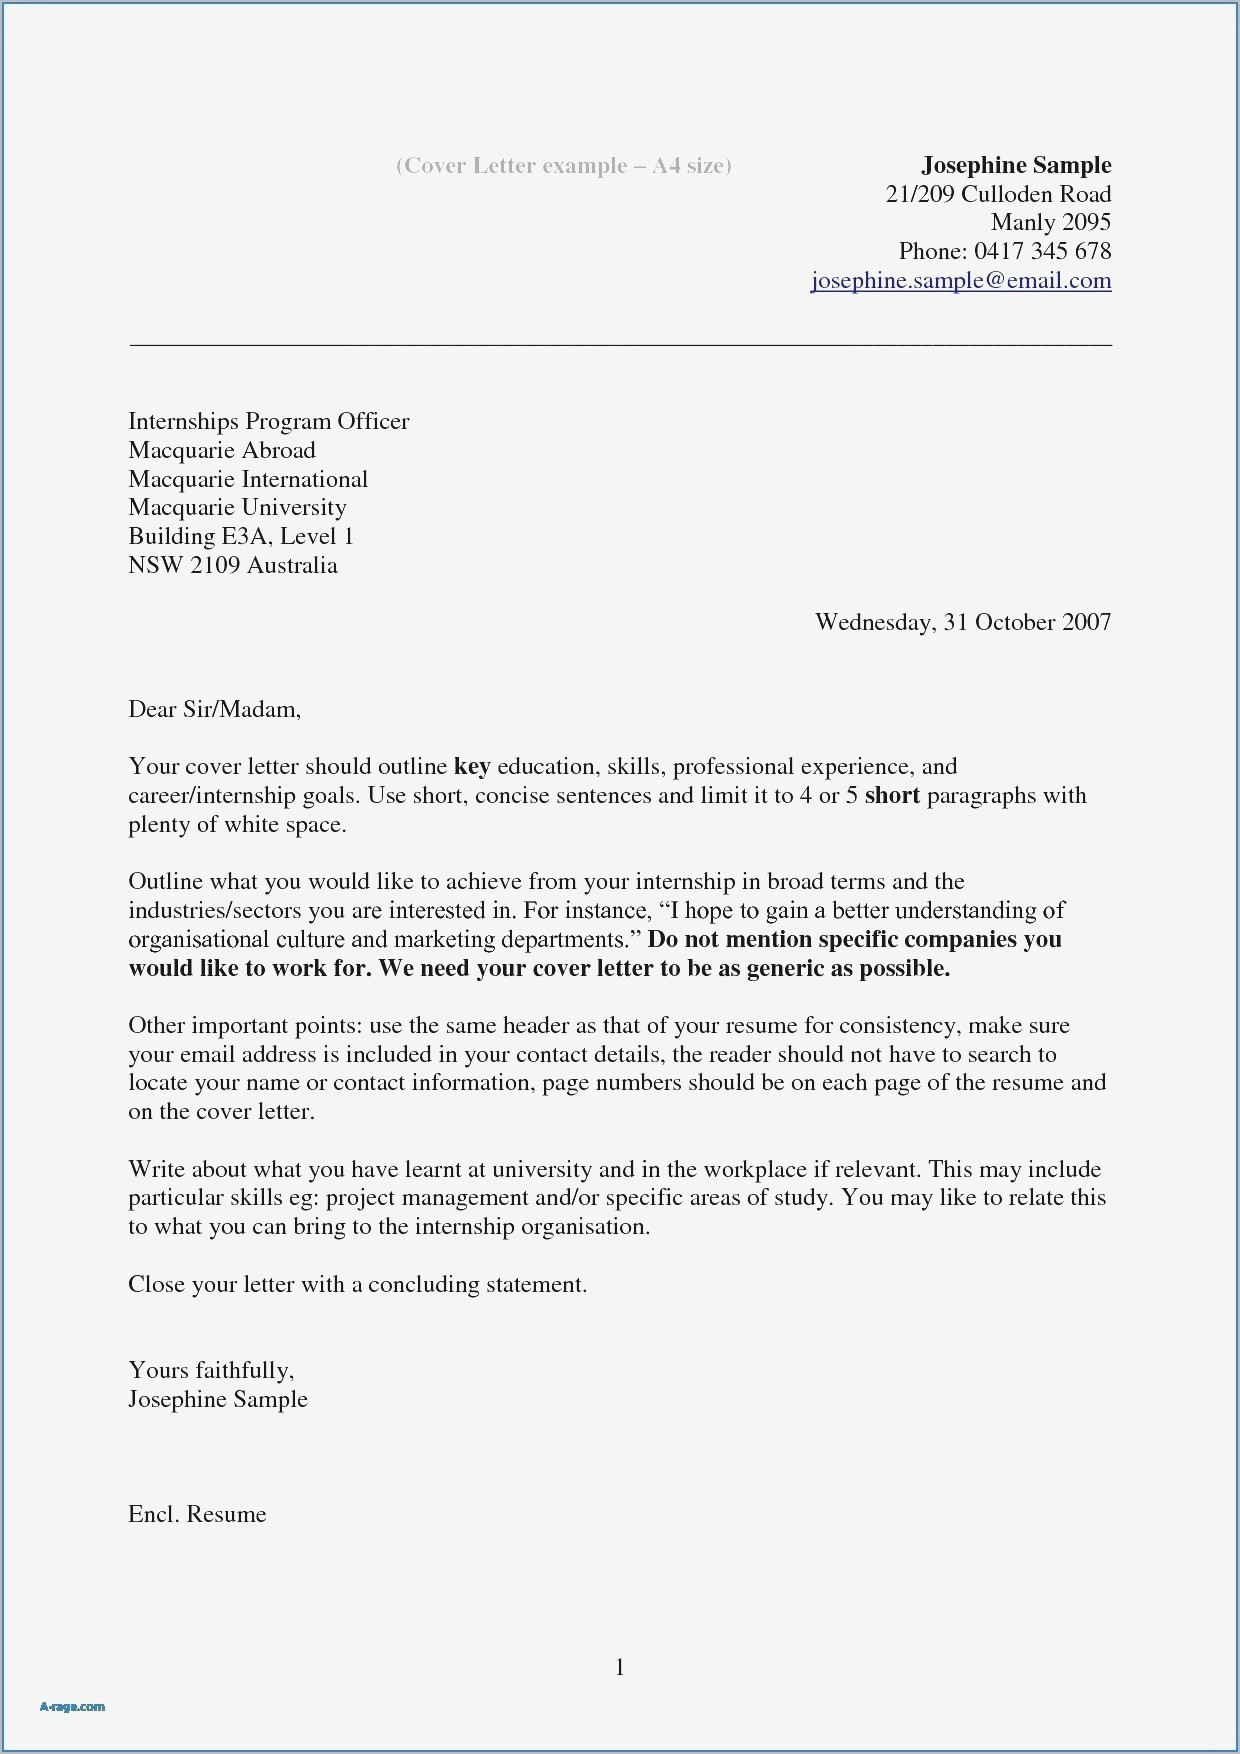 Stop Smoking Letter Template - Black Resume Template Awesome Email Cover Letter Template Ideas